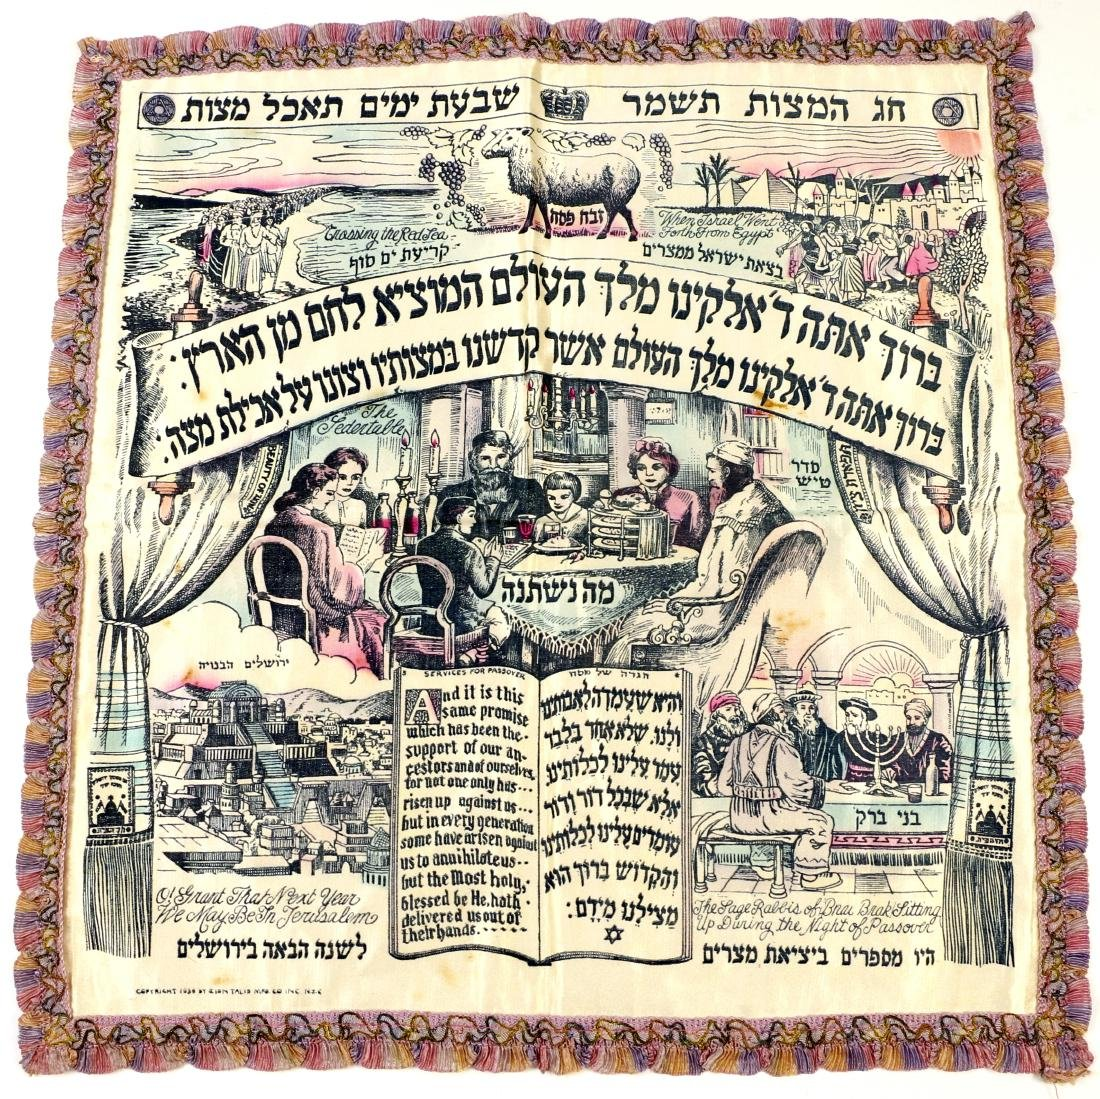 82. AN EARLY SATIN MATZAH COVER. New York, 1938.